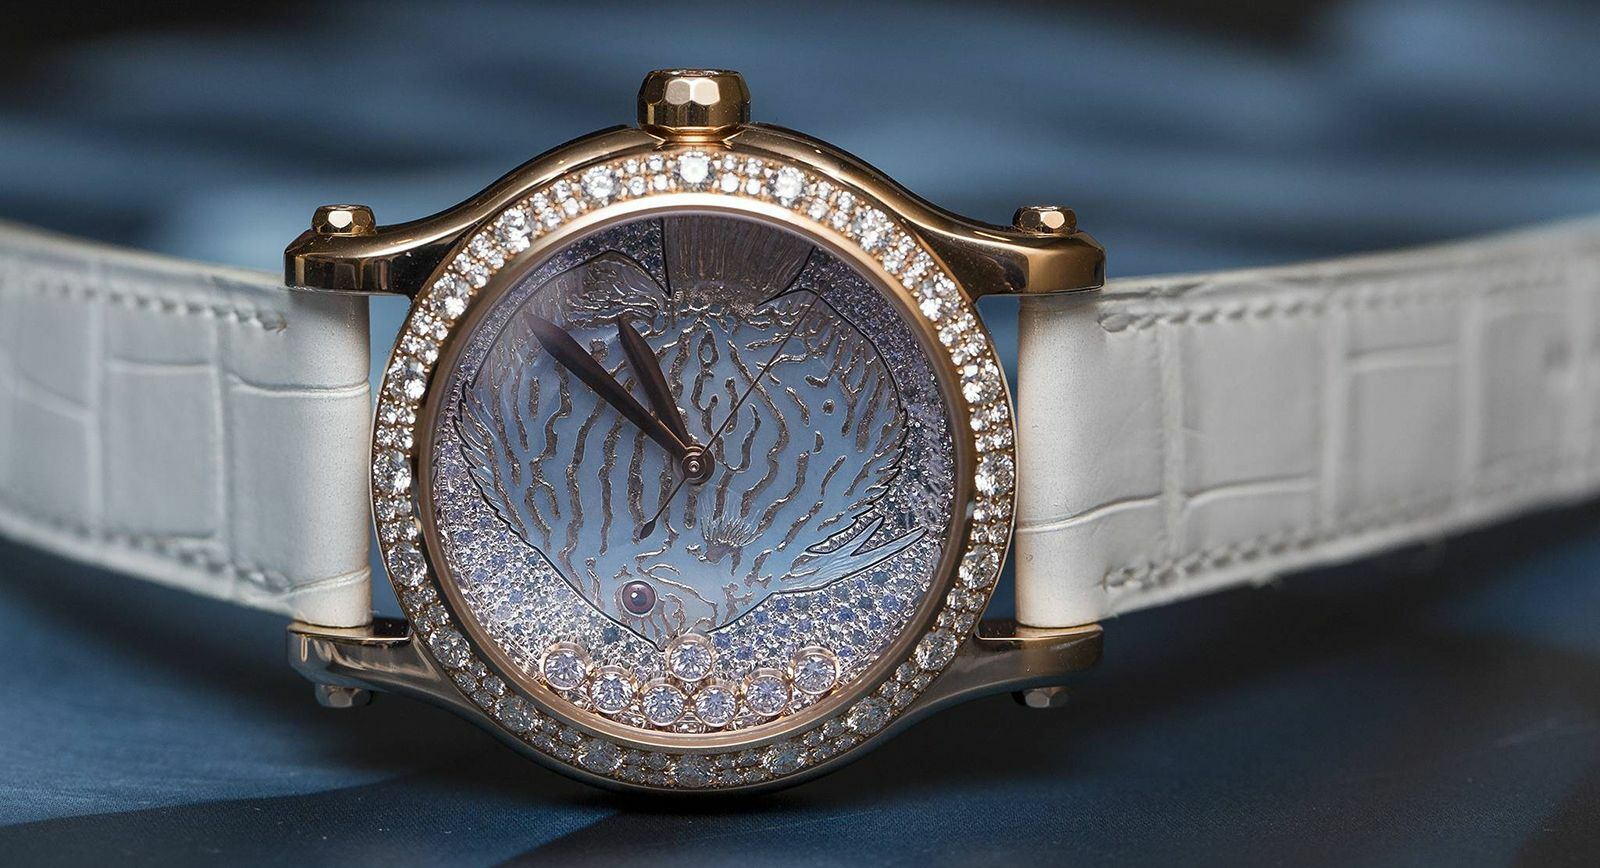 Baselworld Hot Trend: Bejewelled Sea Creatures